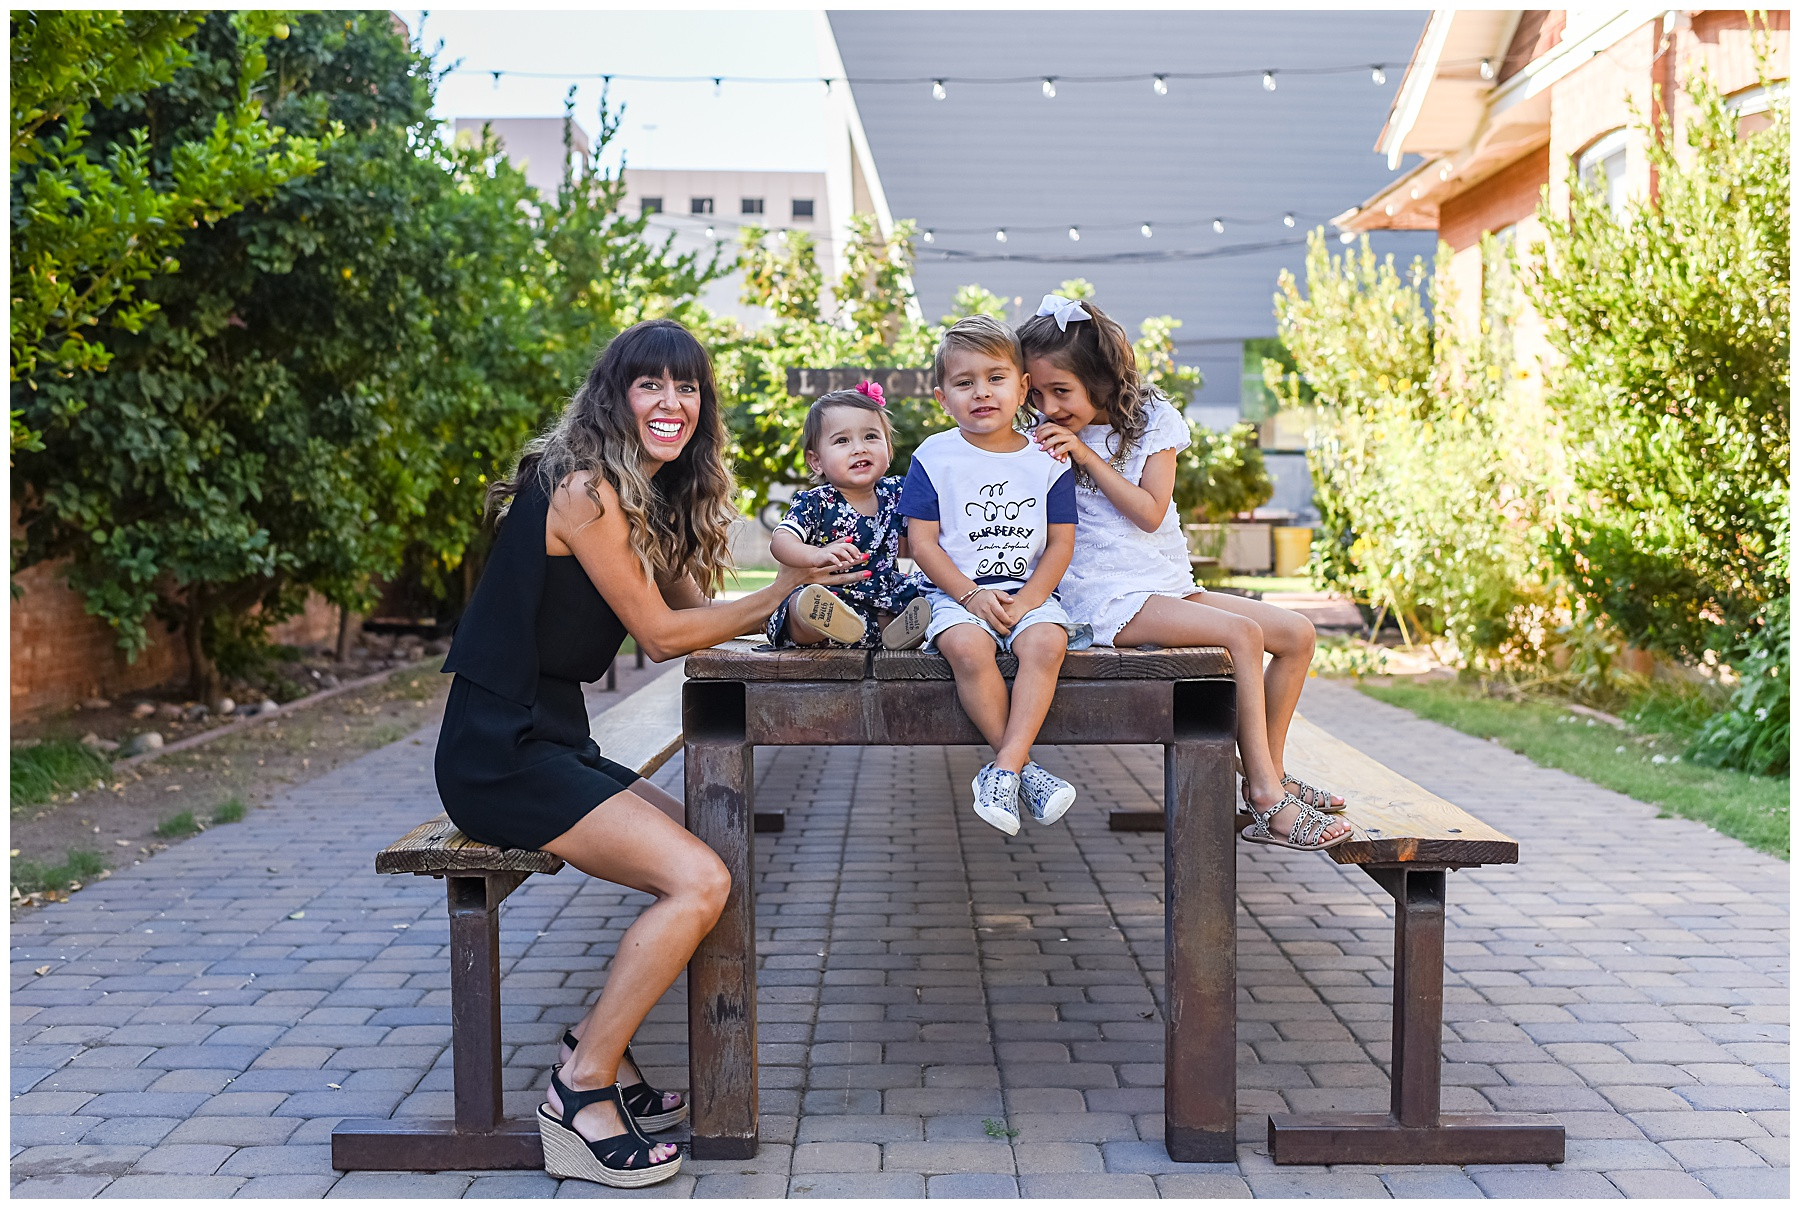 Life inspired family portrait photographer   SweetLife Photography